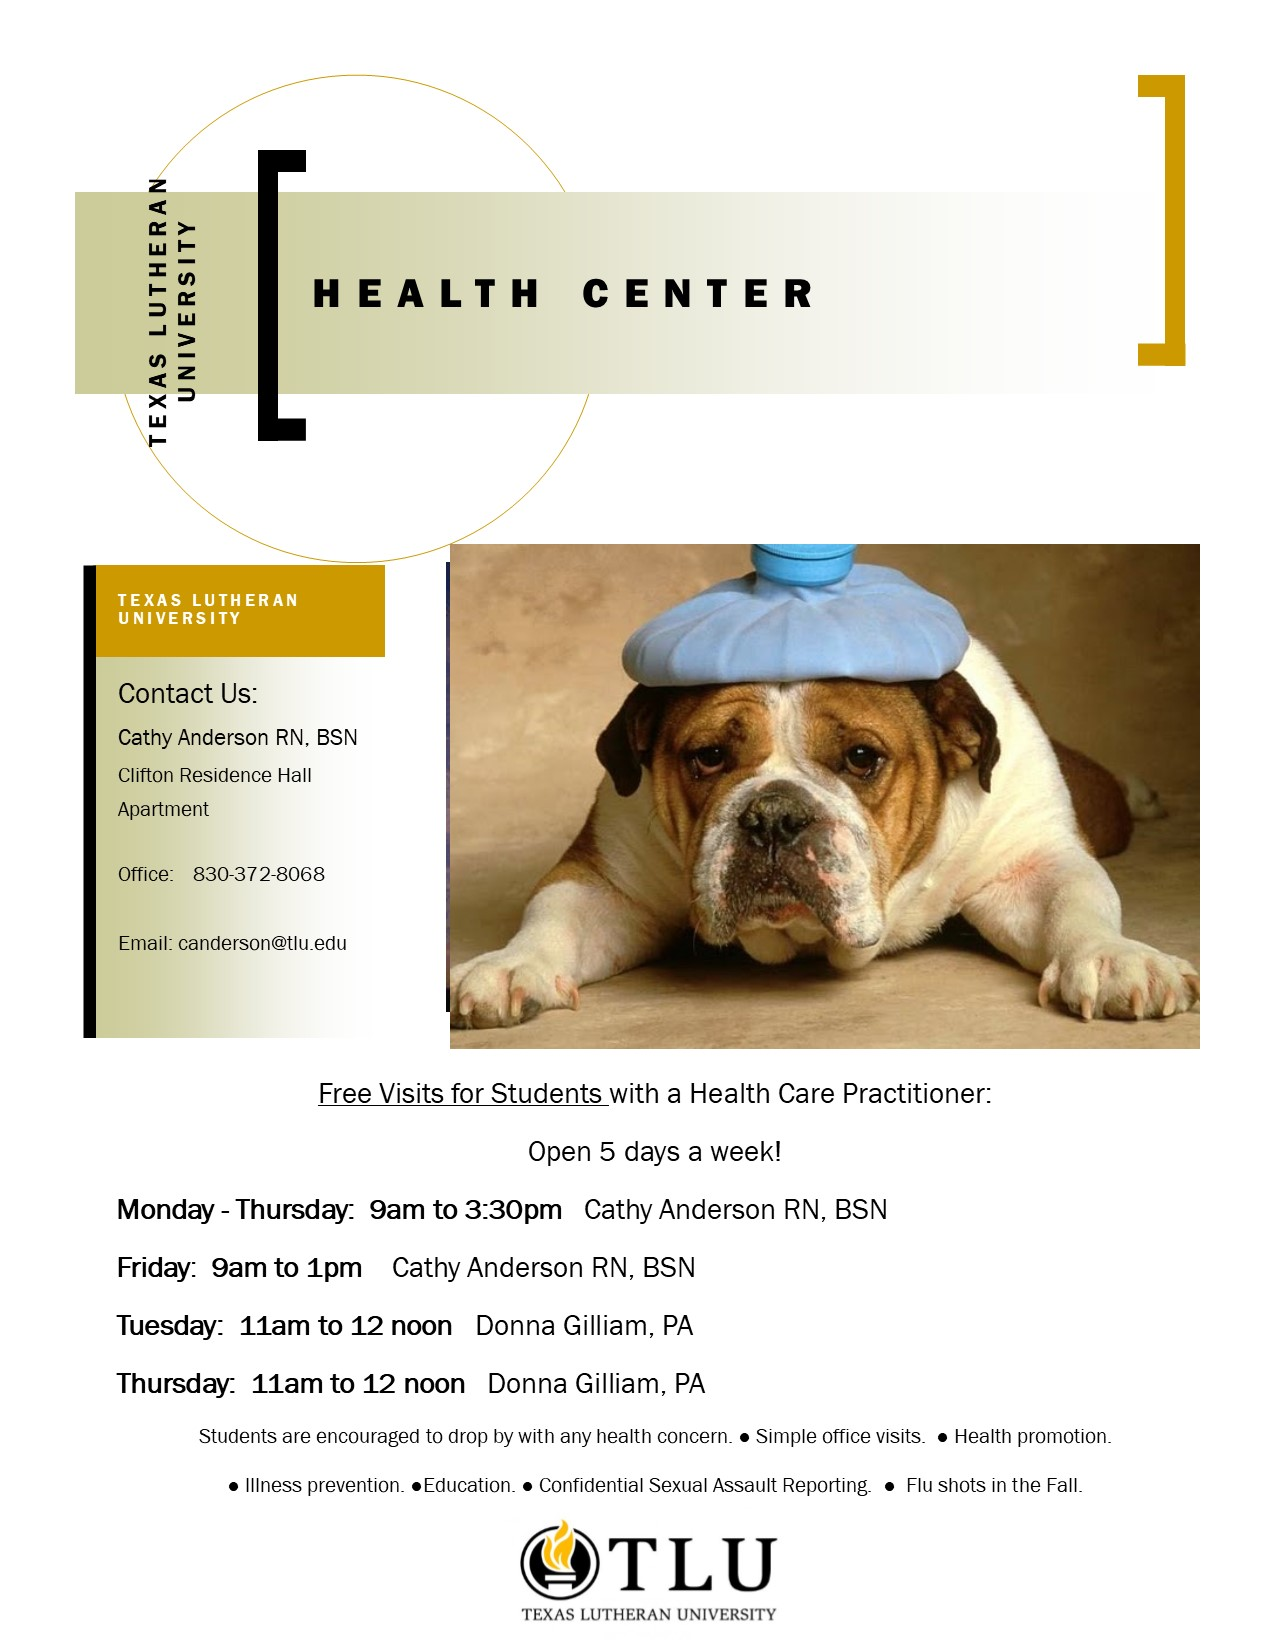 Health Center Information